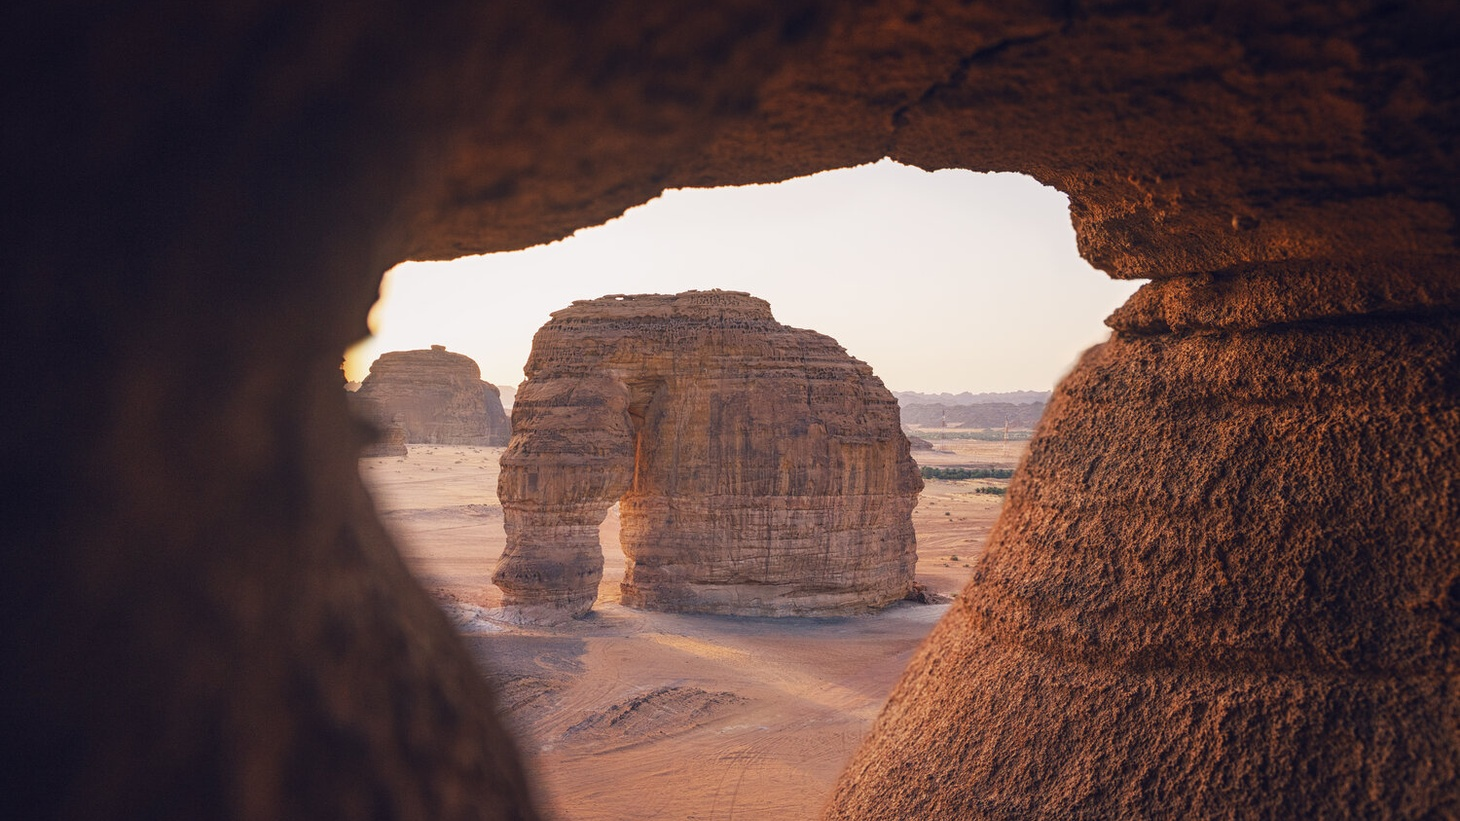 Elephant Rock in AlUla in Saudi Arabia, where Desert X is set to take place next year.